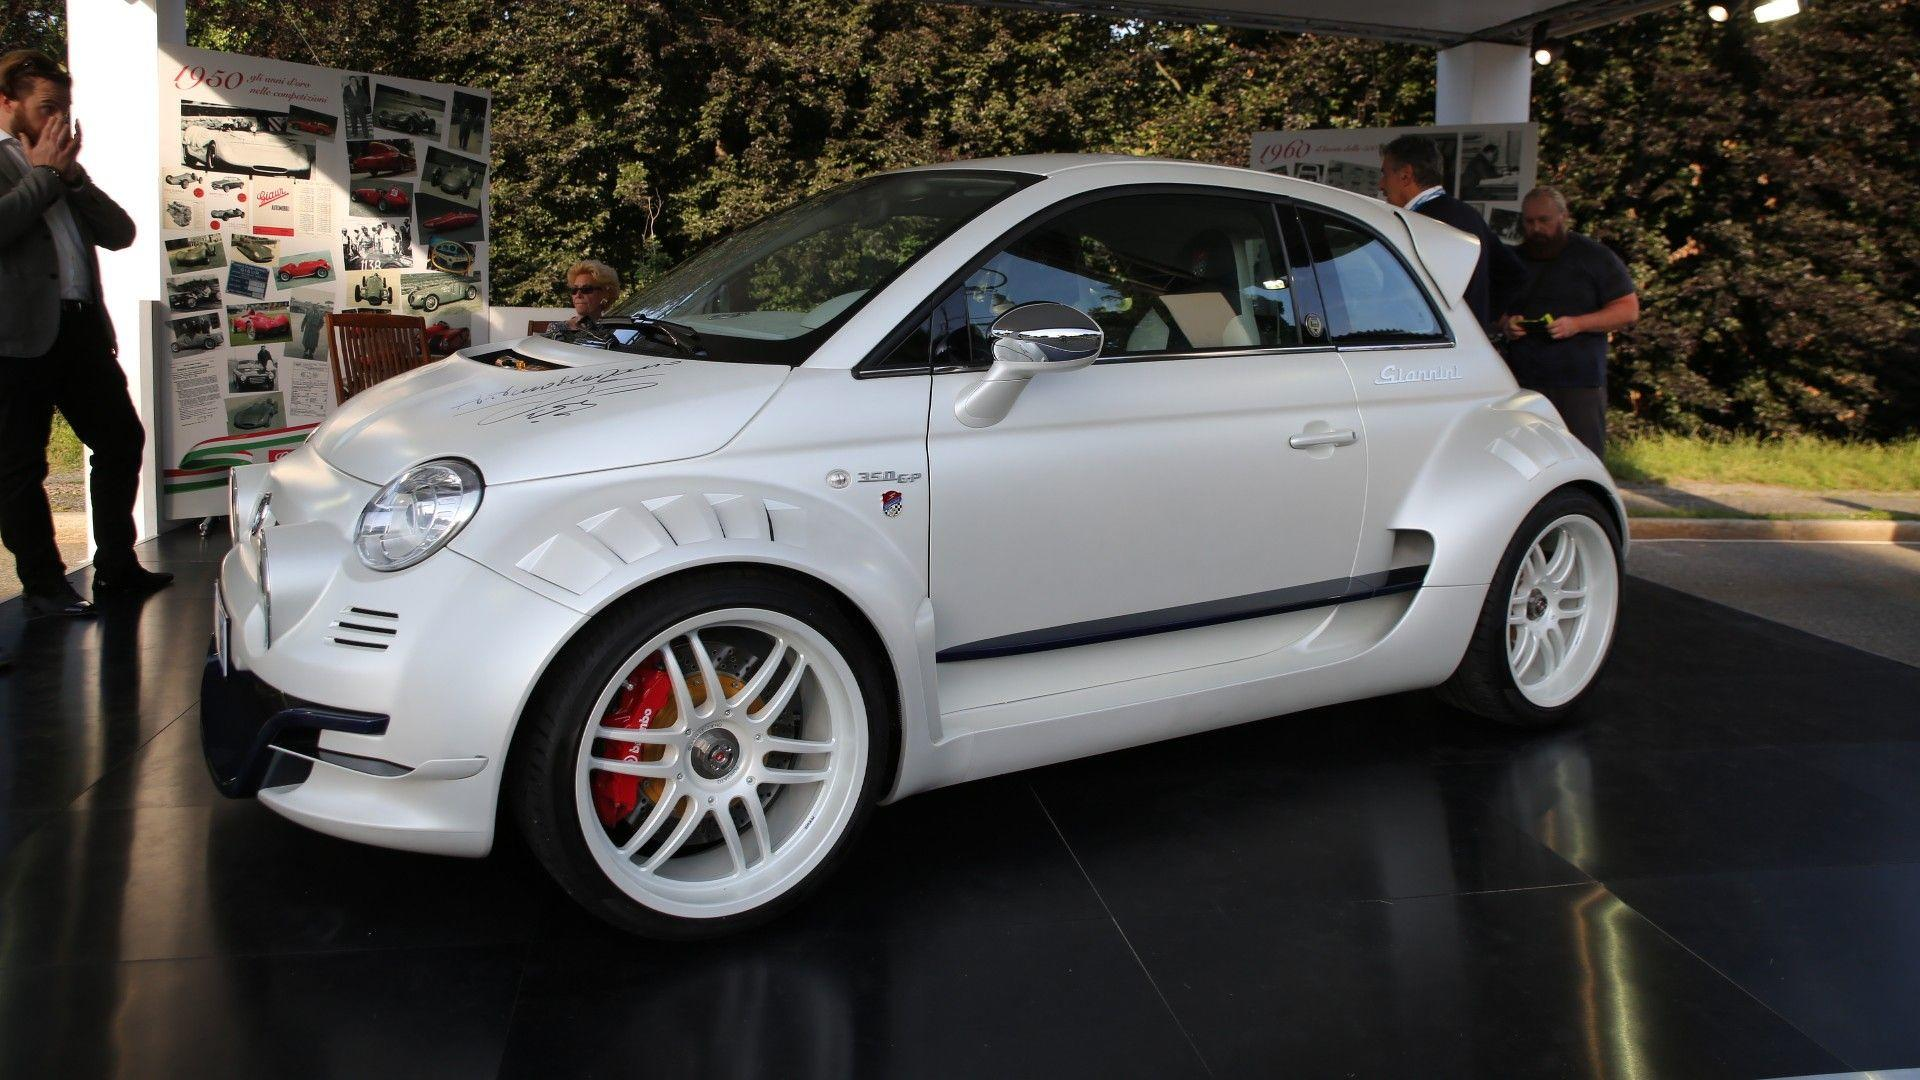 Fiat 500 Giannini Is Super City Car With 350 Hp From Alfa Romeo